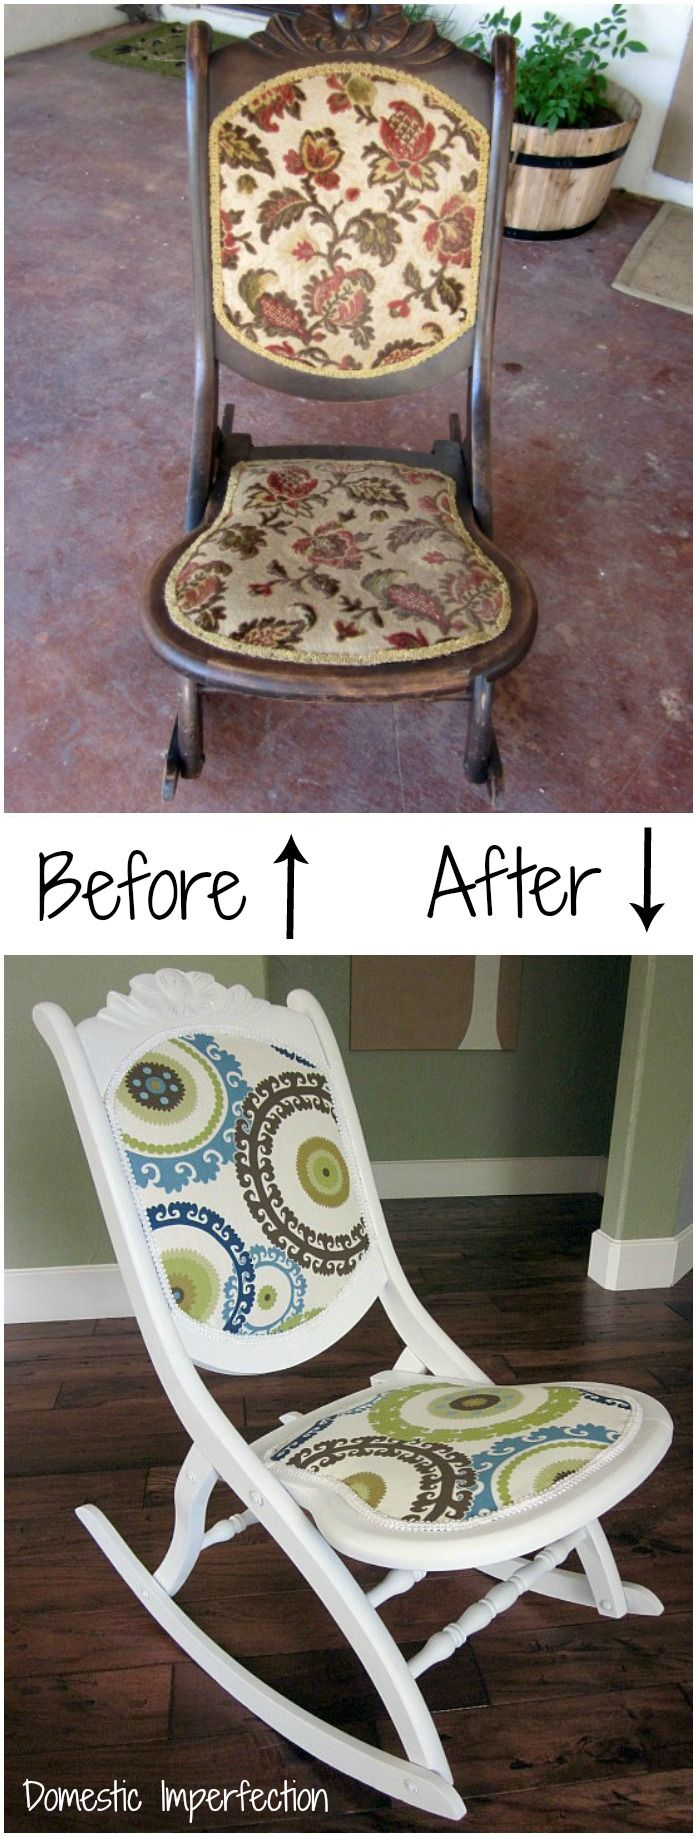 This rocker was found in the trash and given new life! Post includes easy to follow instructions and lots of pictures.